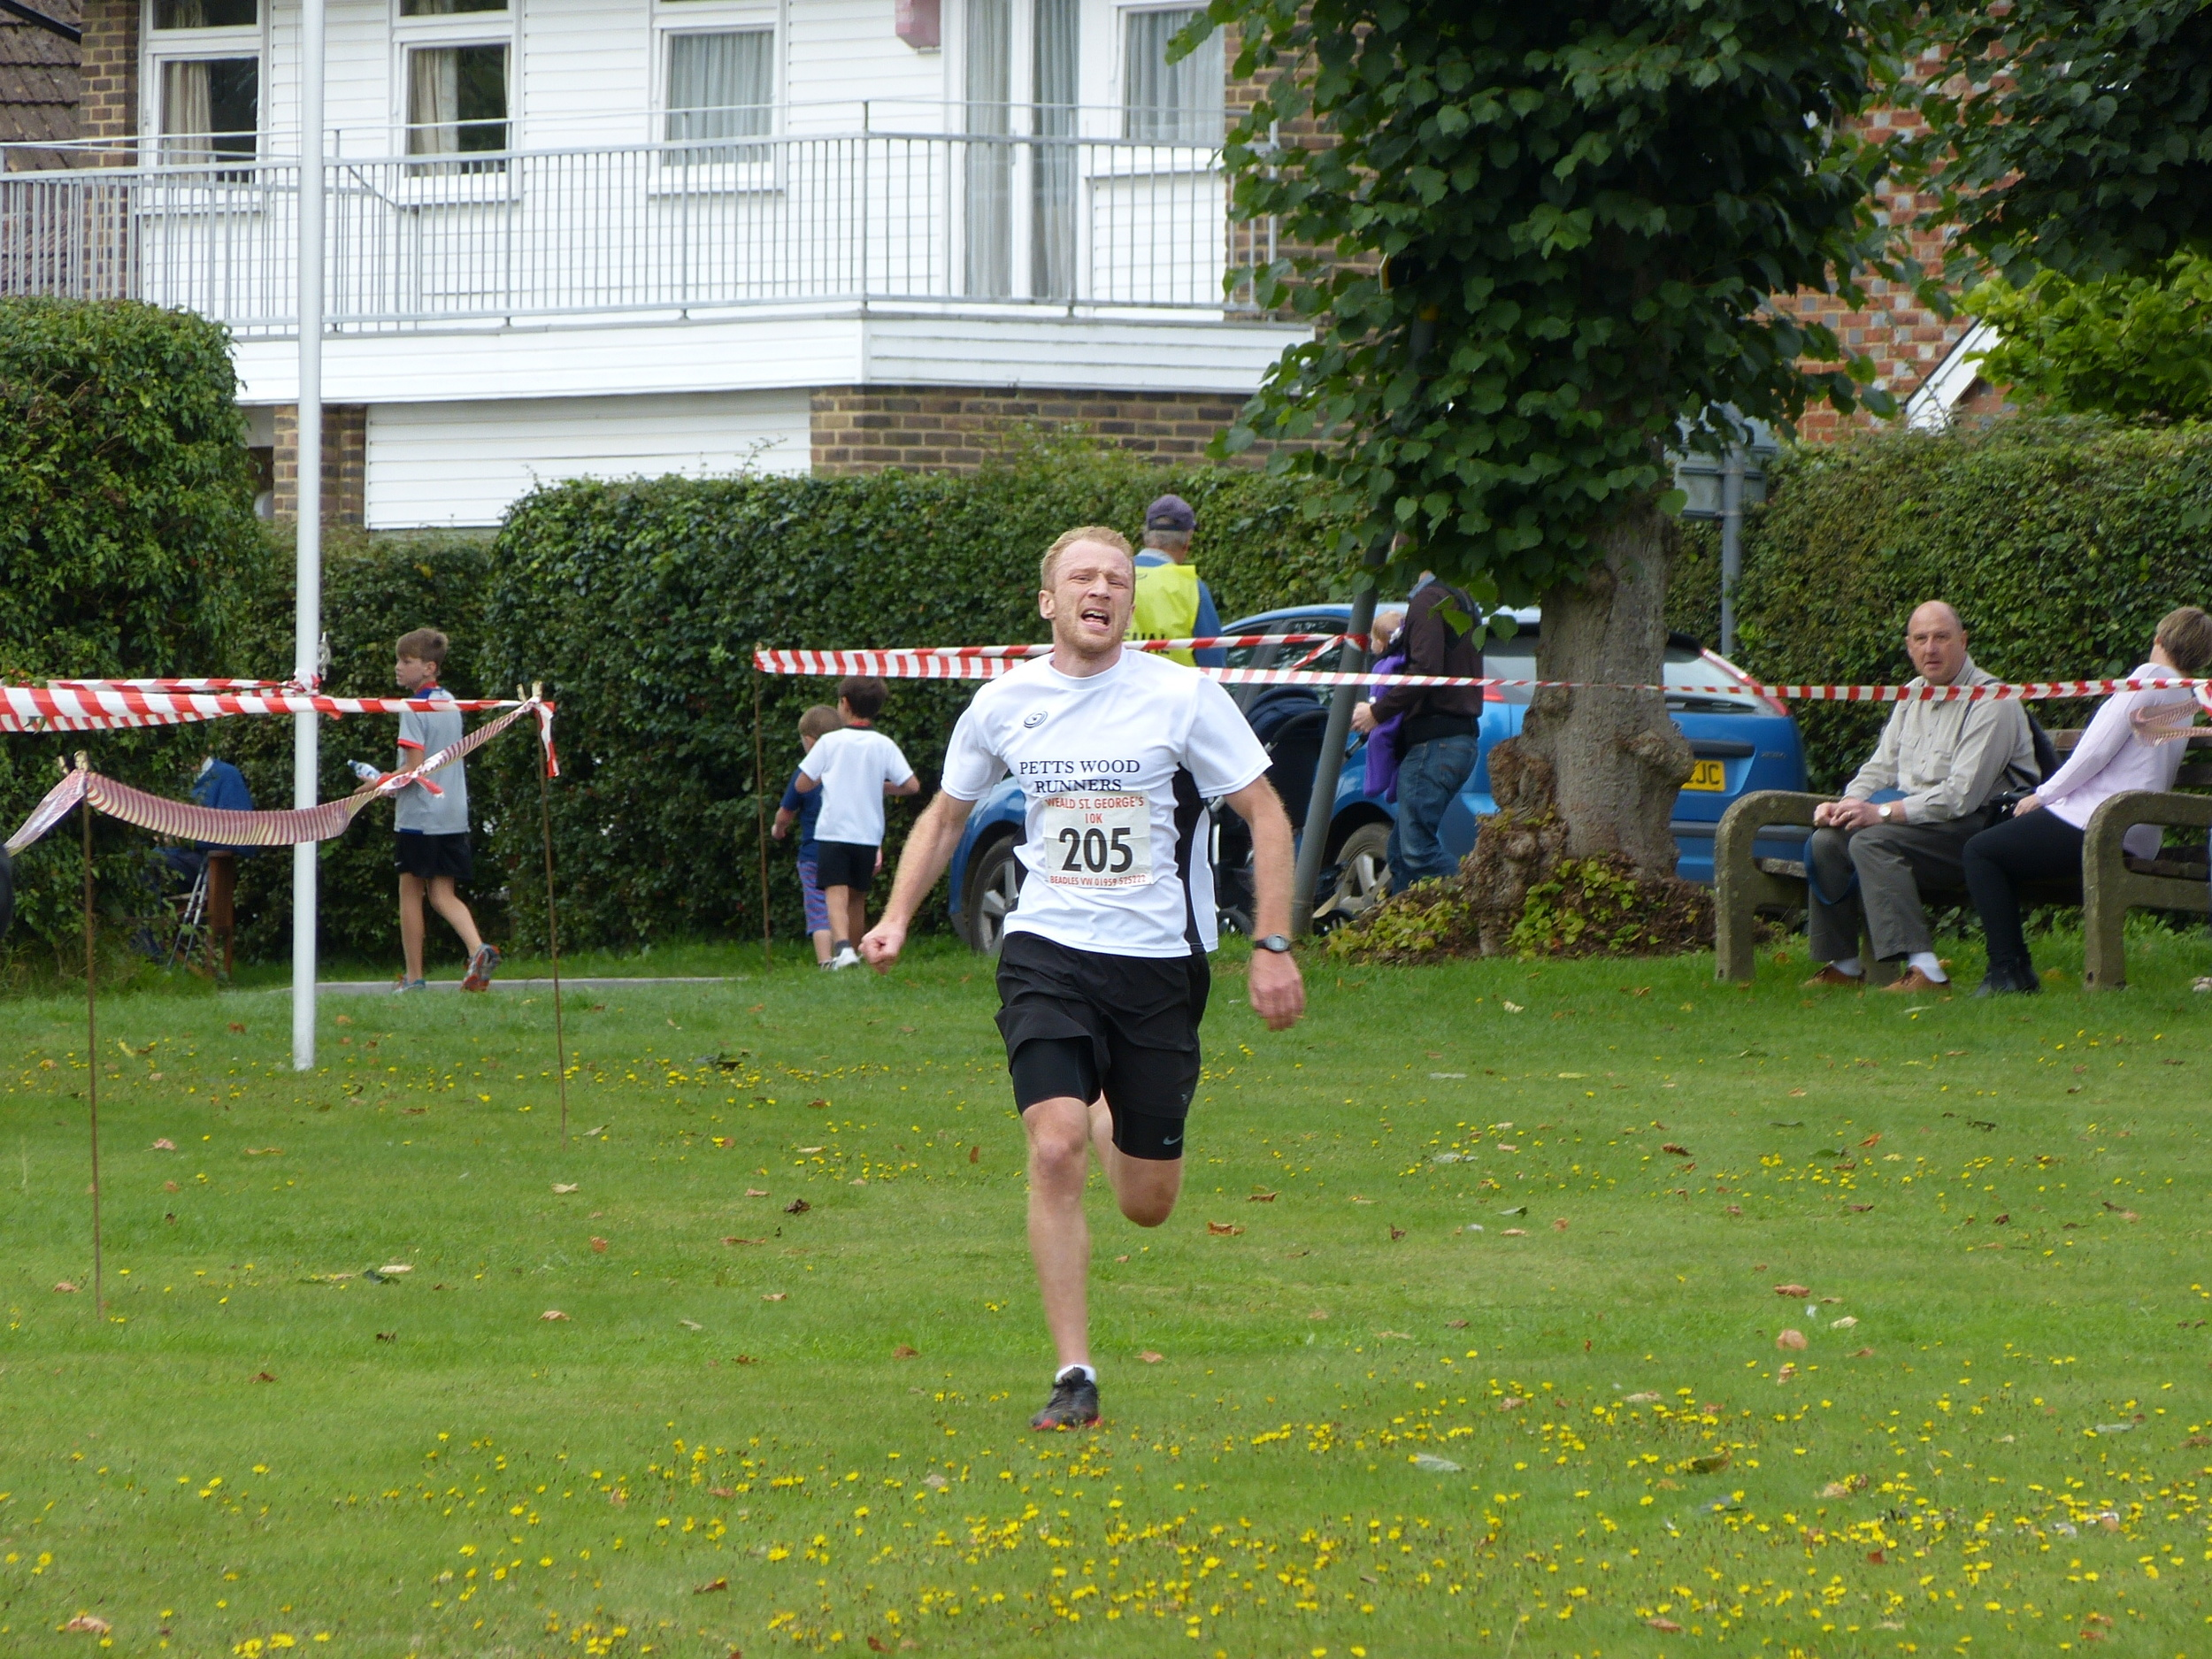 Mens 2nd place David Young 00:36:55